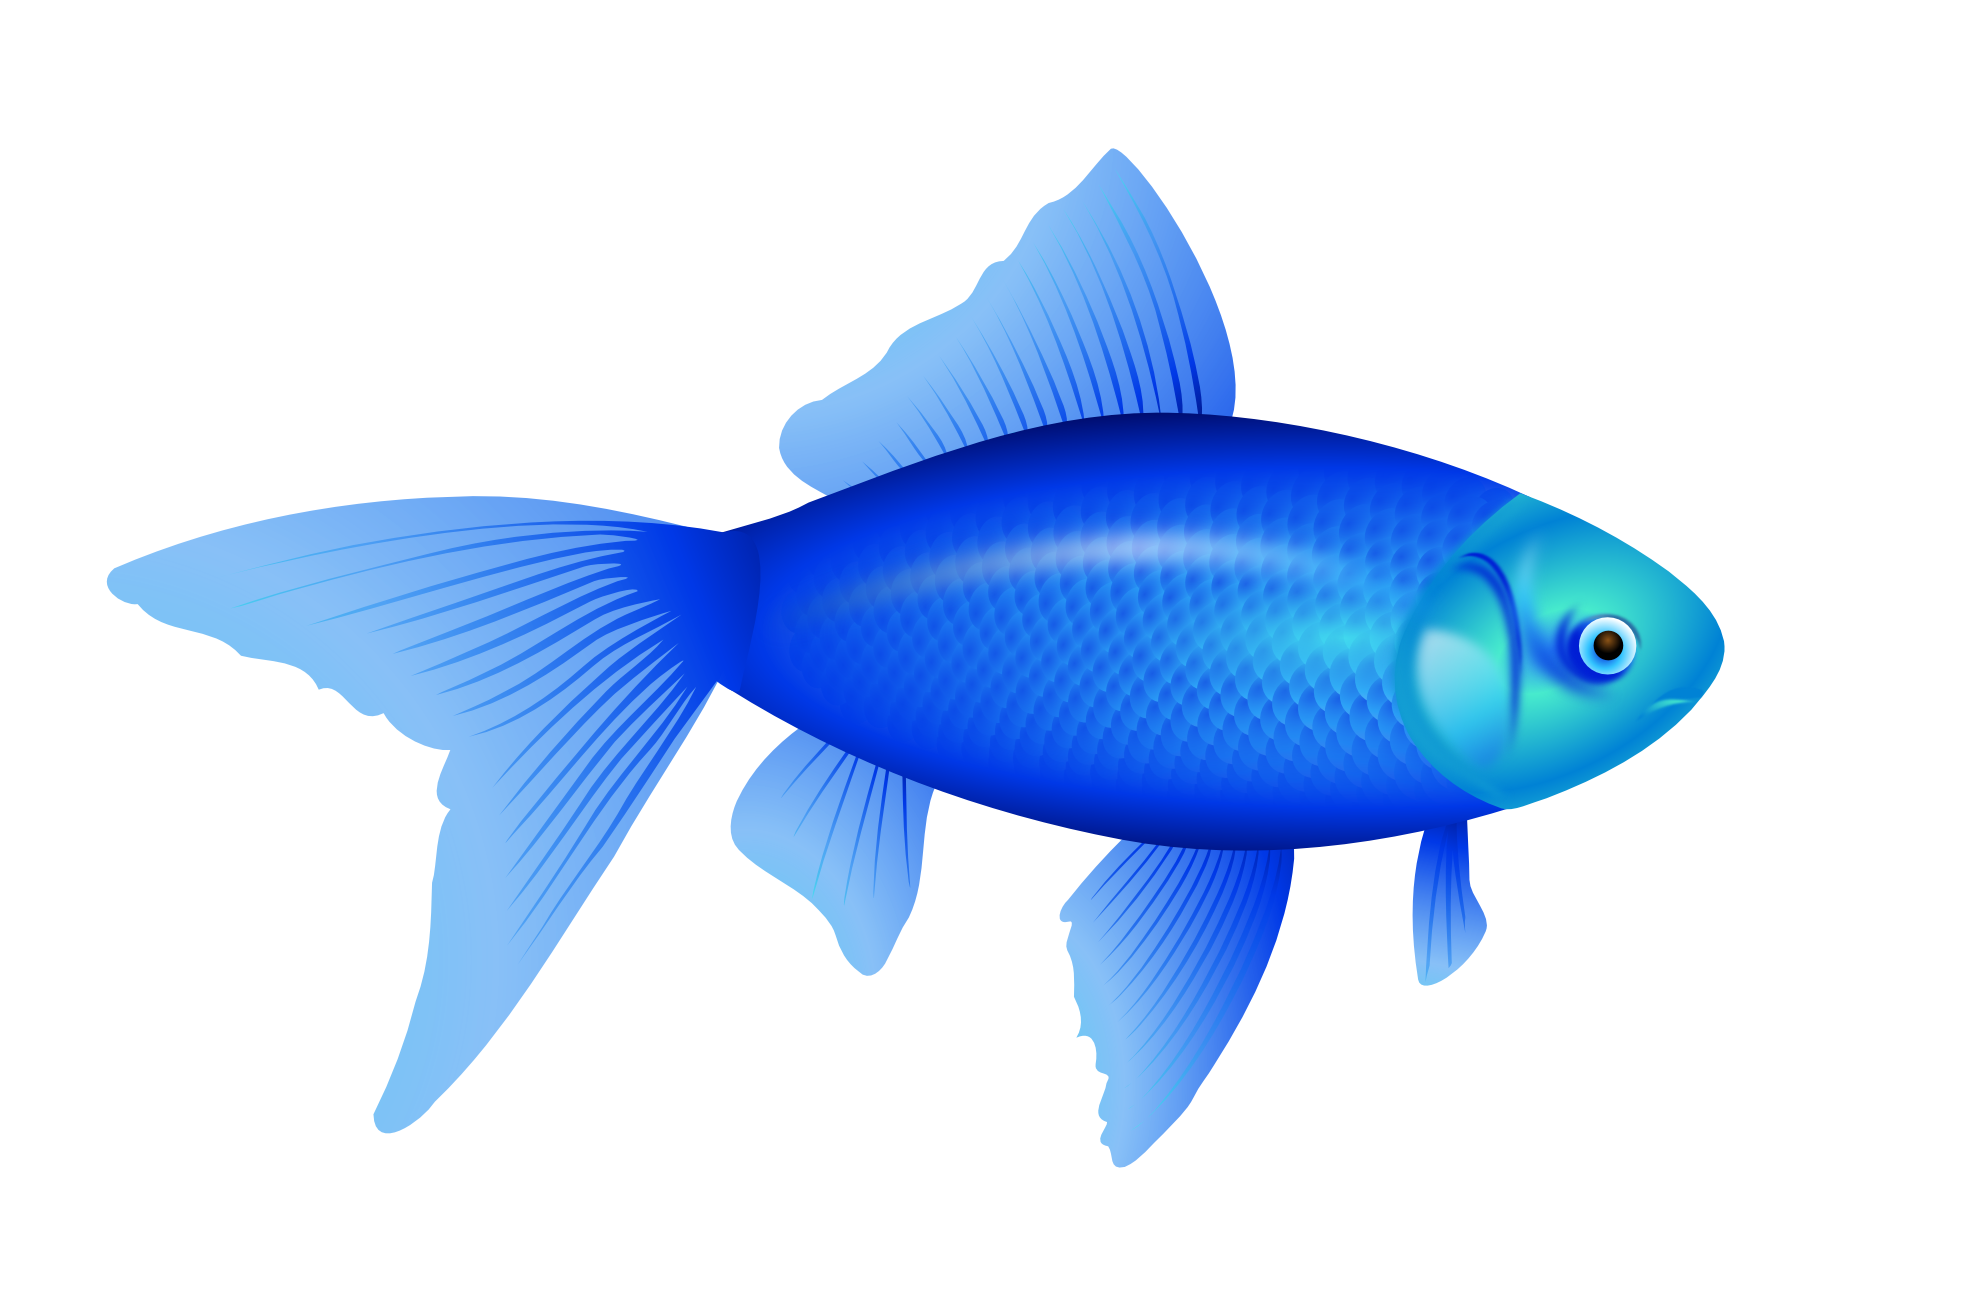 Png Images Of Fish Fish Transparent Pictures Free Download Free Transparent Png Logos